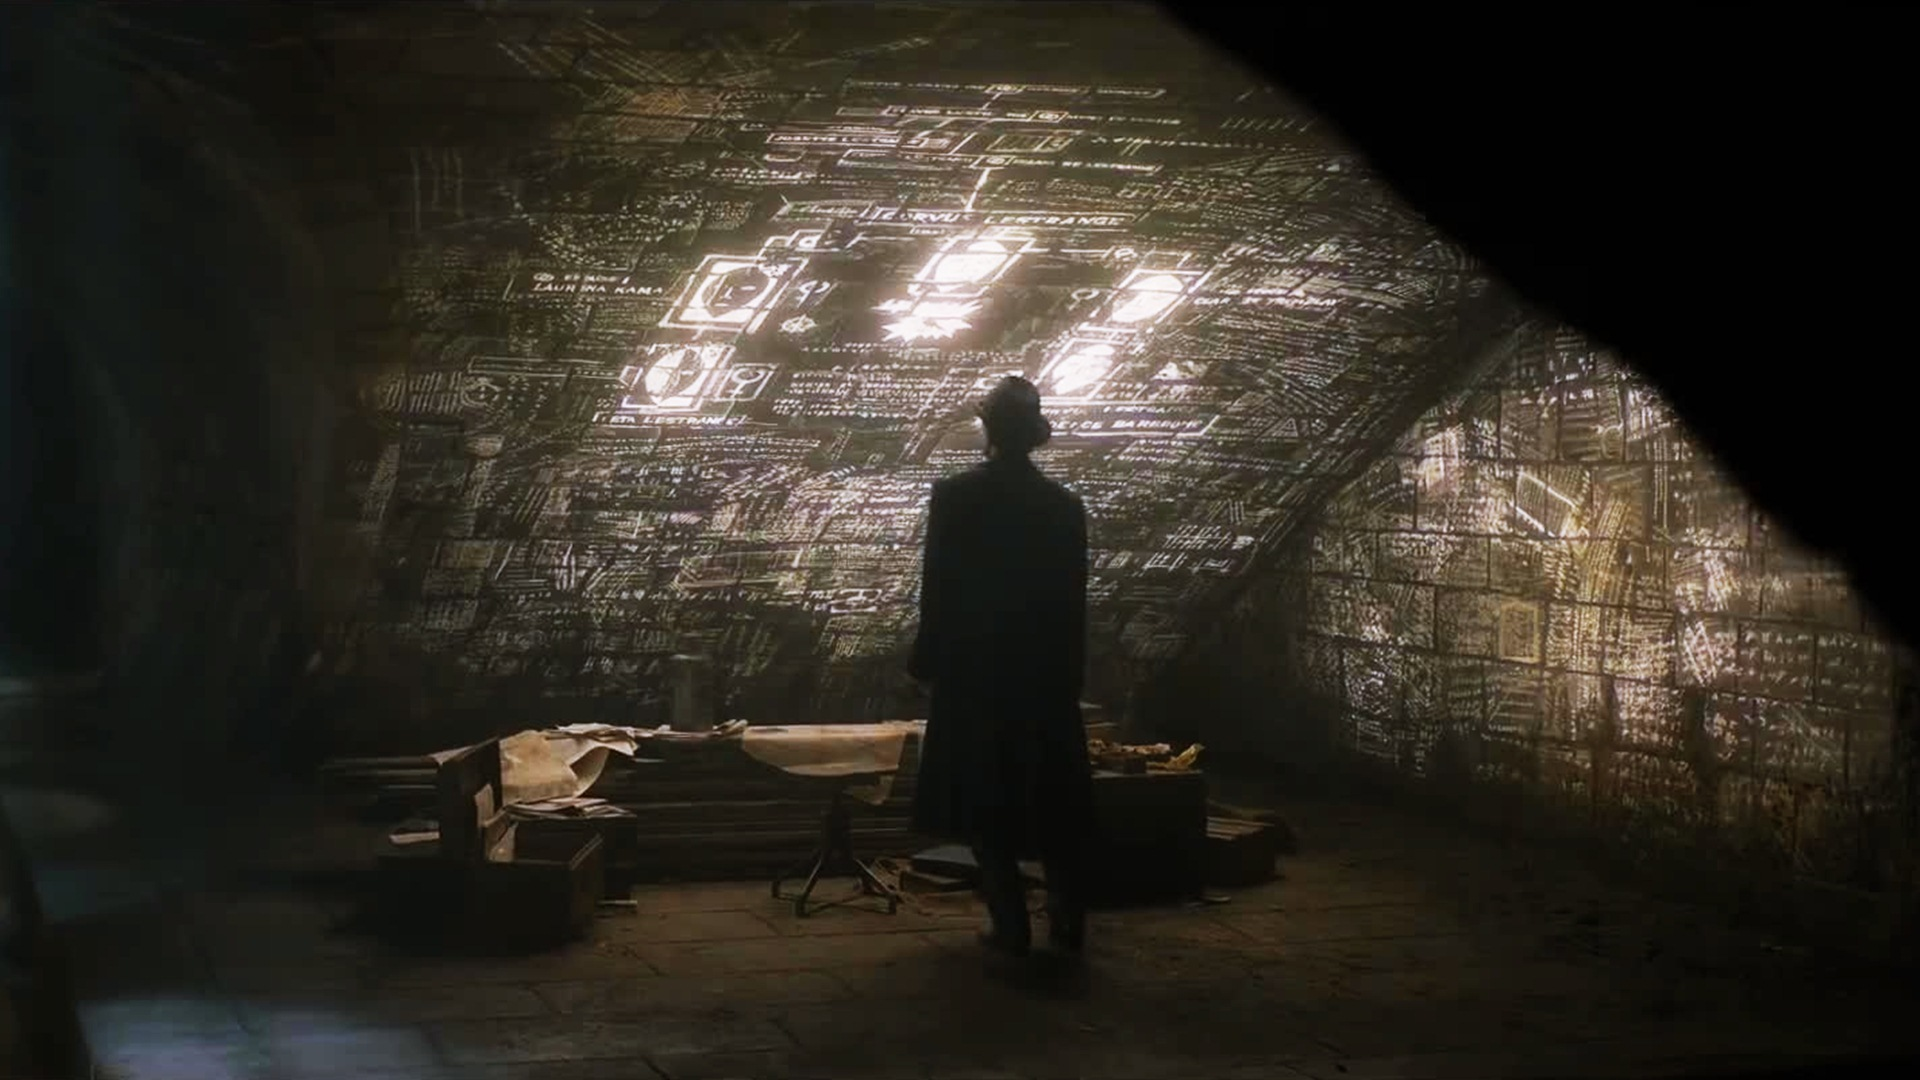 Fantastic Beasts The Crimes of Grindelwald Background HD 1920x1080